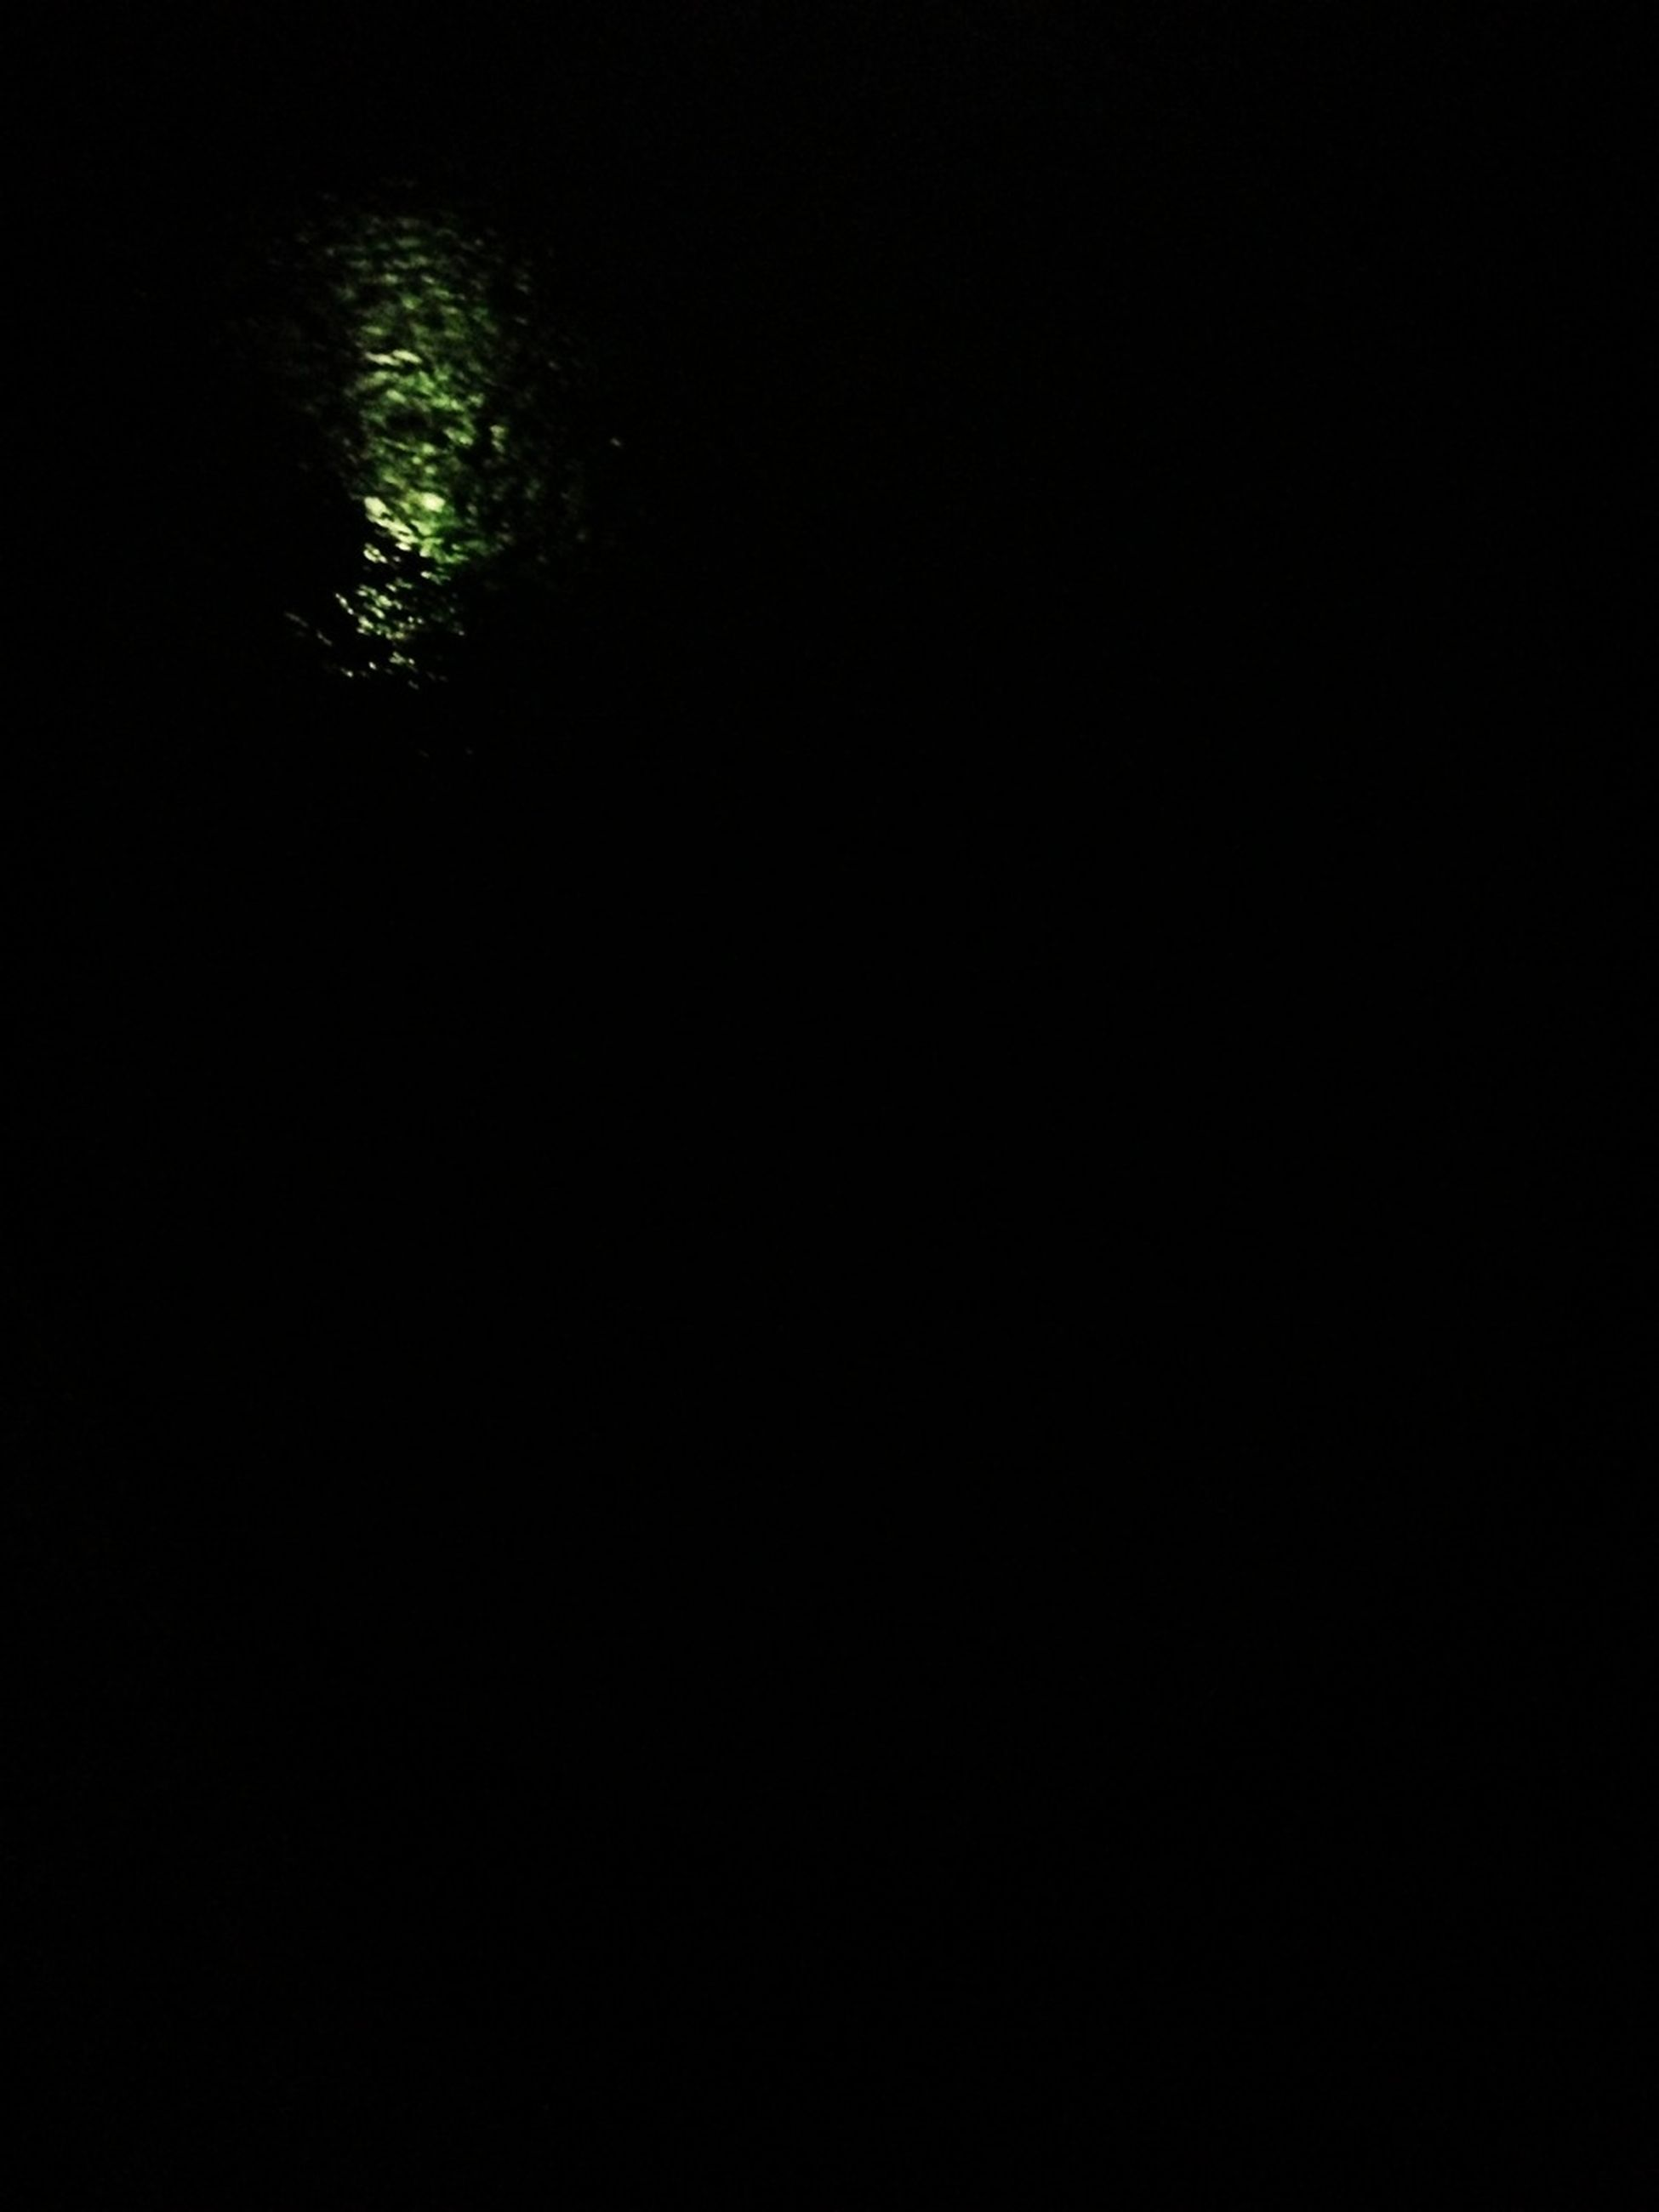 night, dark, tranquility, tree, copy space, nature, growth, low angle view, silhouette, beauty in nature, tranquil scene, no people, illuminated, outdoors, backgrounds, light - natural phenomenon, scenics, clear sky, idyllic, black background